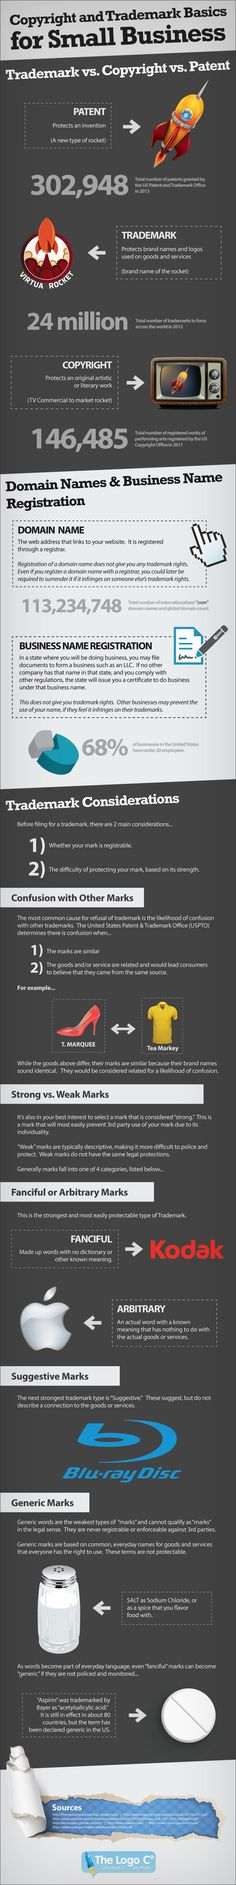 The Small Business Guide to Copyright and Trademarks